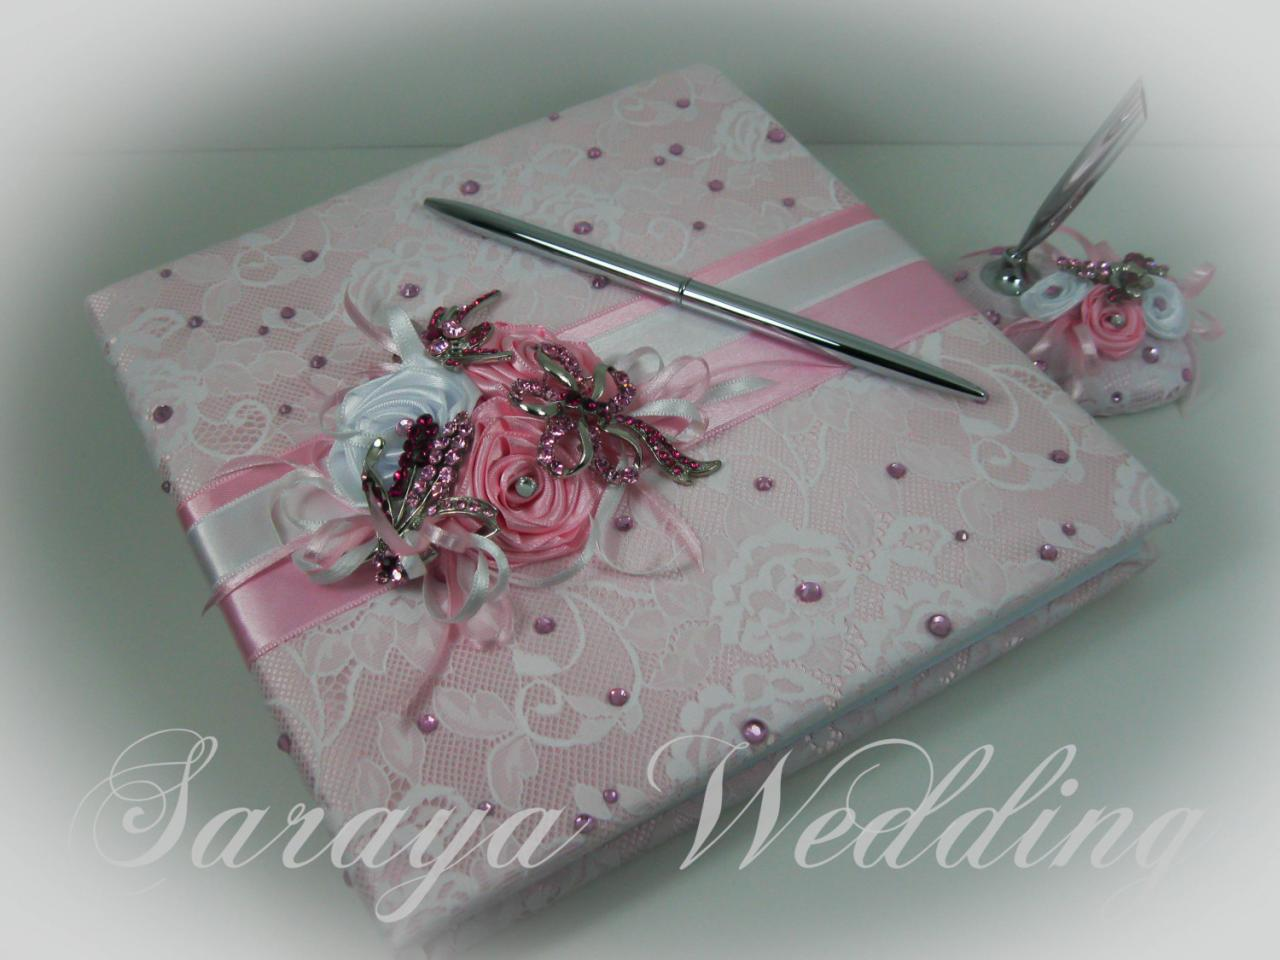 Lace Wedding Guest Book and Pen Set, Blush Pink and White, Wedding Guestbook, Wedding Sign In Book, Personalized Guest Book, Spring Wedding